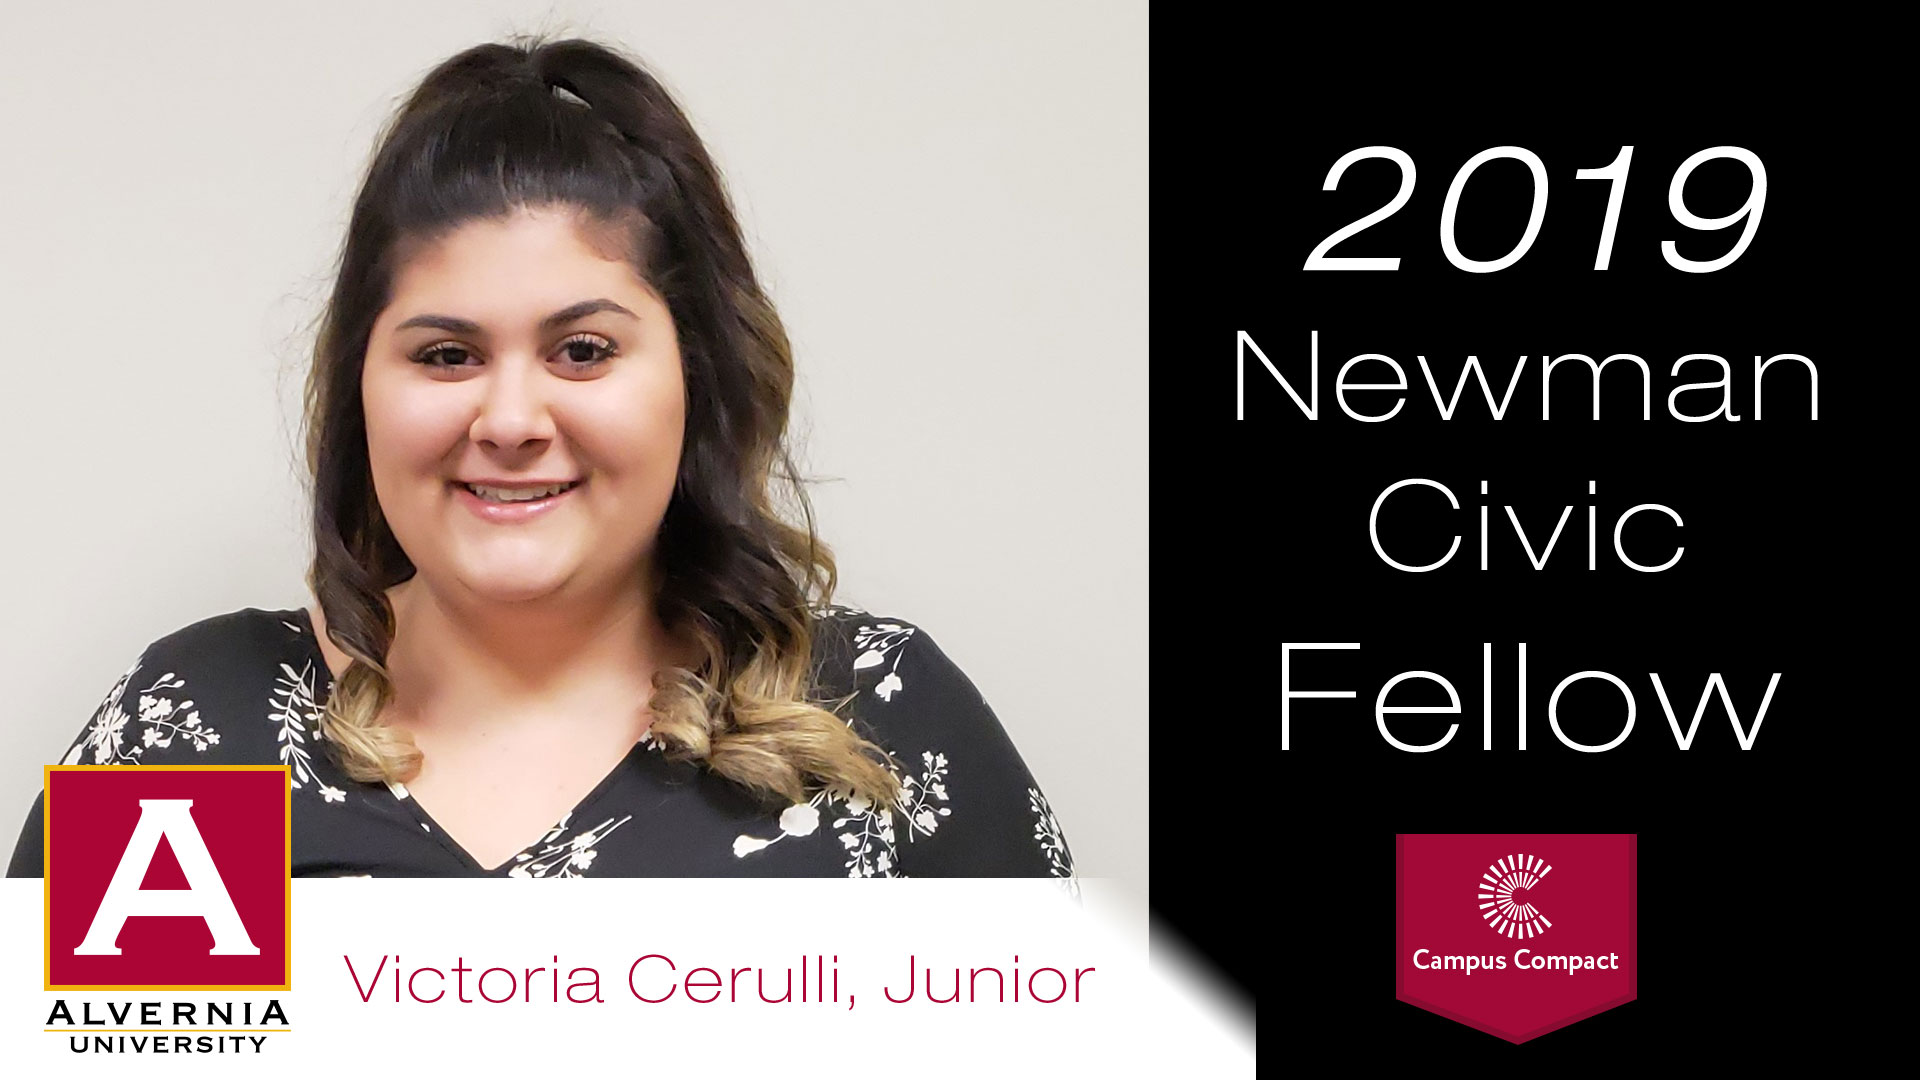 Victoria Cerulli Newman Civic Fellow